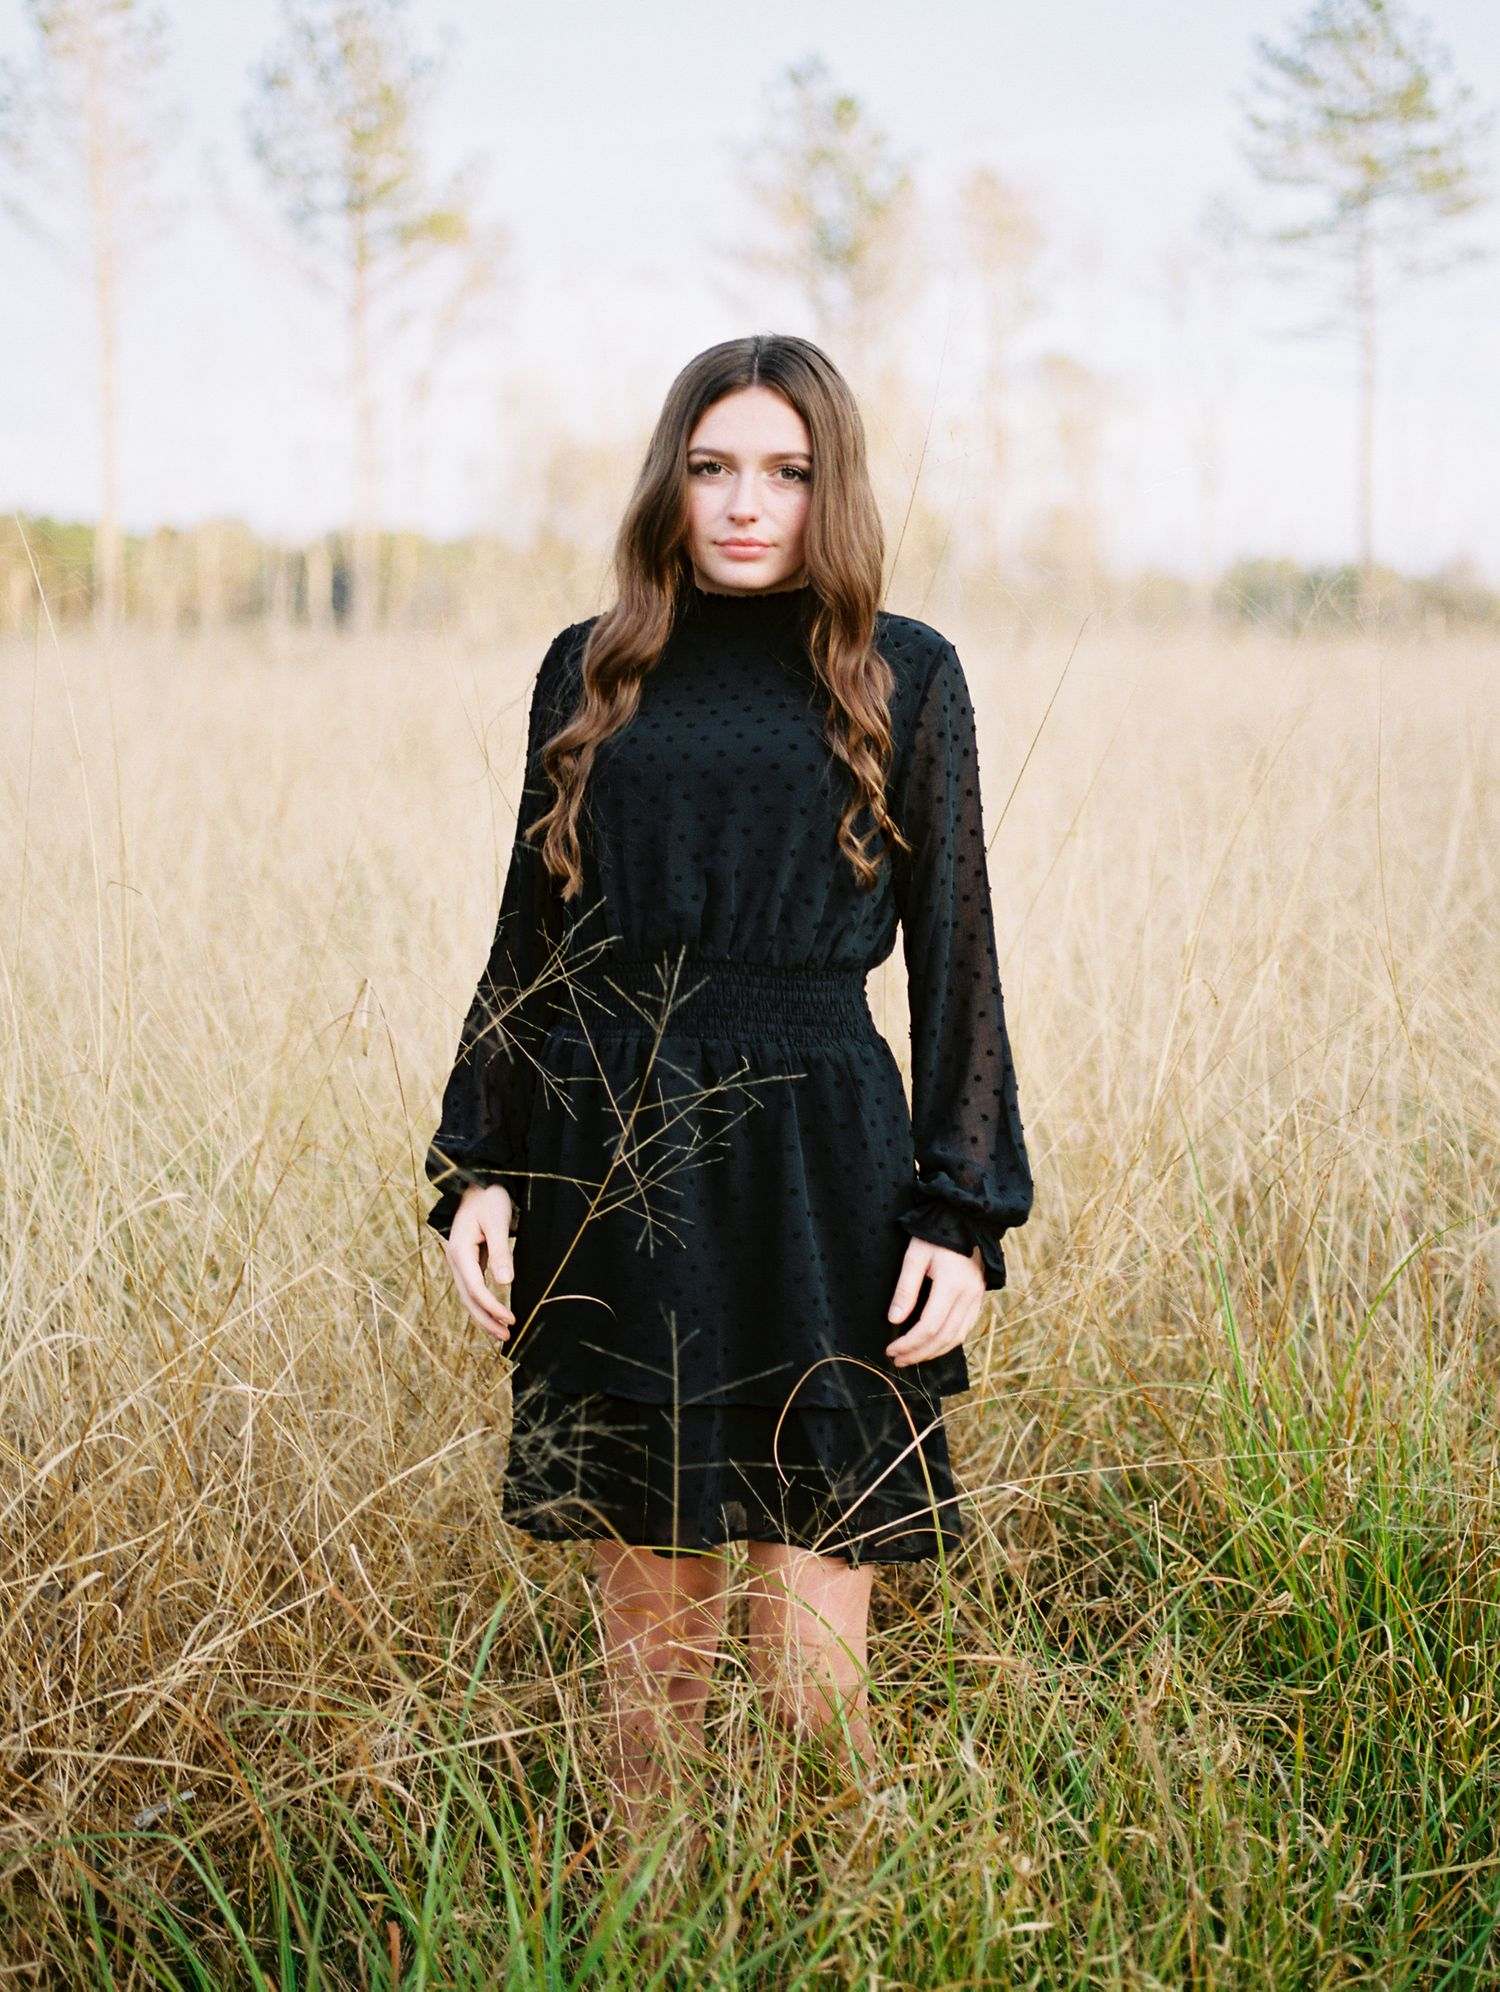 Louisiana senior portrait photography of a girl Franklinton High School student in an open field